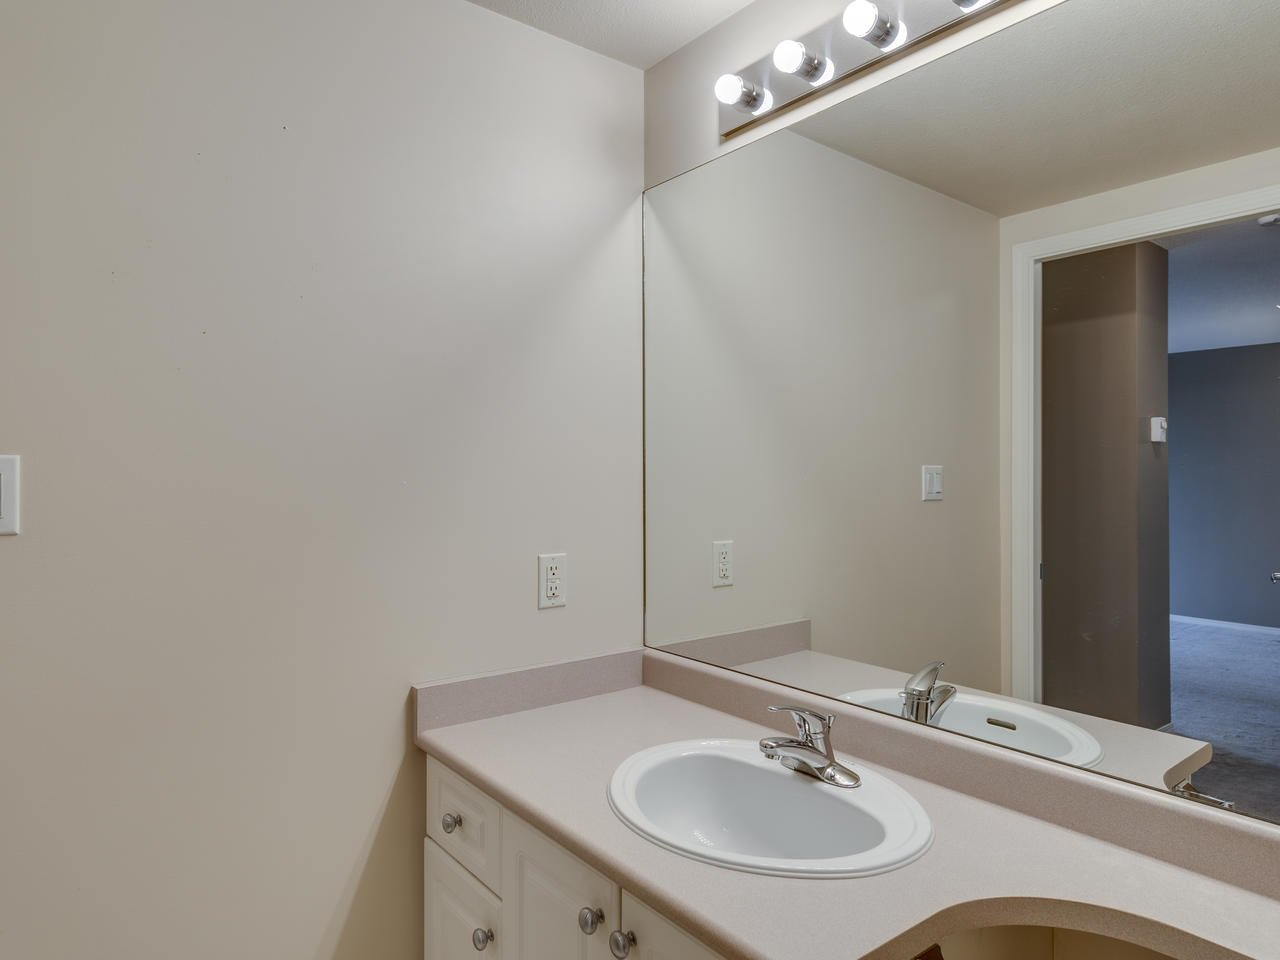 """Photo 26: Photos: 404 12148 224 Street in Maple Ridge: East Central Condo for sale in """"Panorama"""" : MLS®# R2461995"""